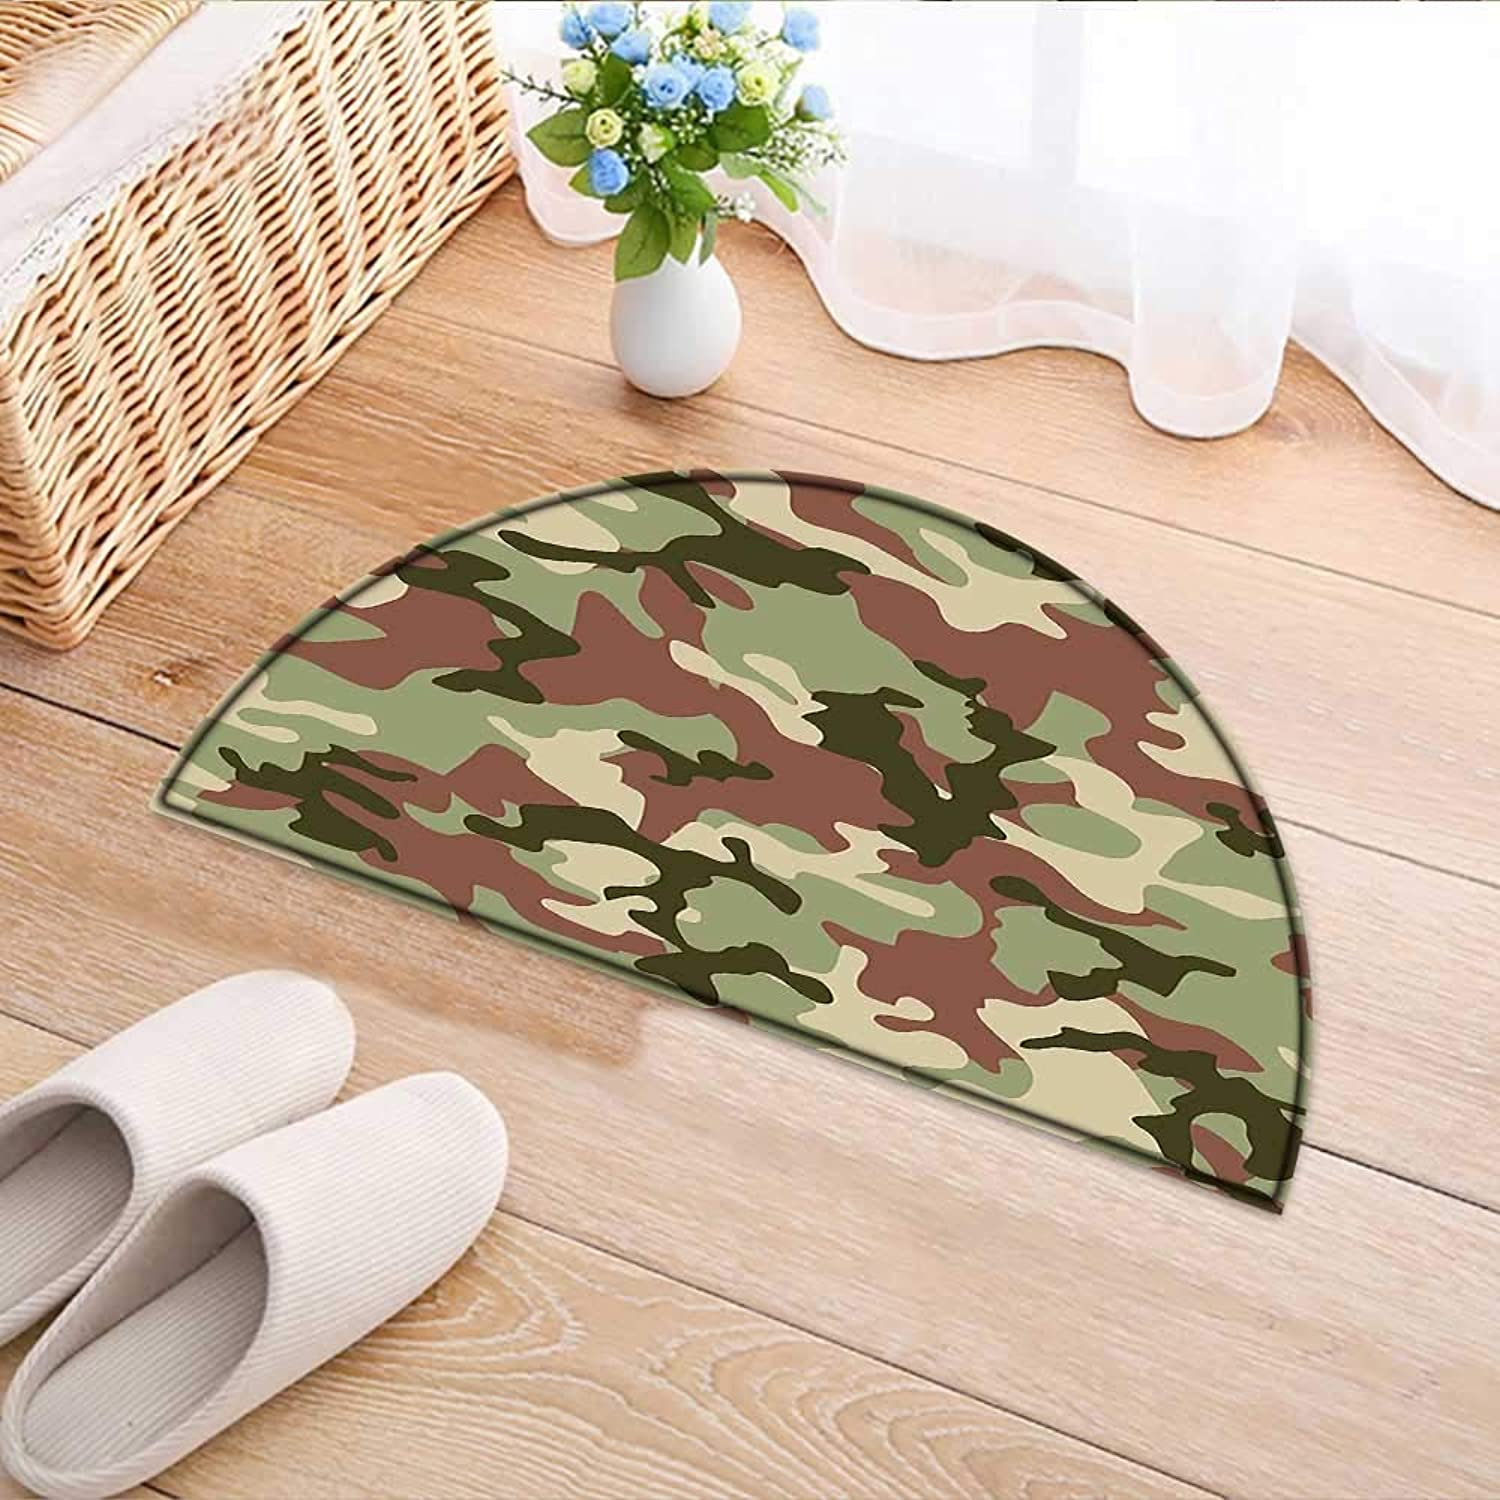 Semicircle Rug Kid Carpet Green Camouflage in Forest colors Hunter Combat Dried pink Dark Green Army Green Home Decor Foor Carpe W39 x H28 INCH